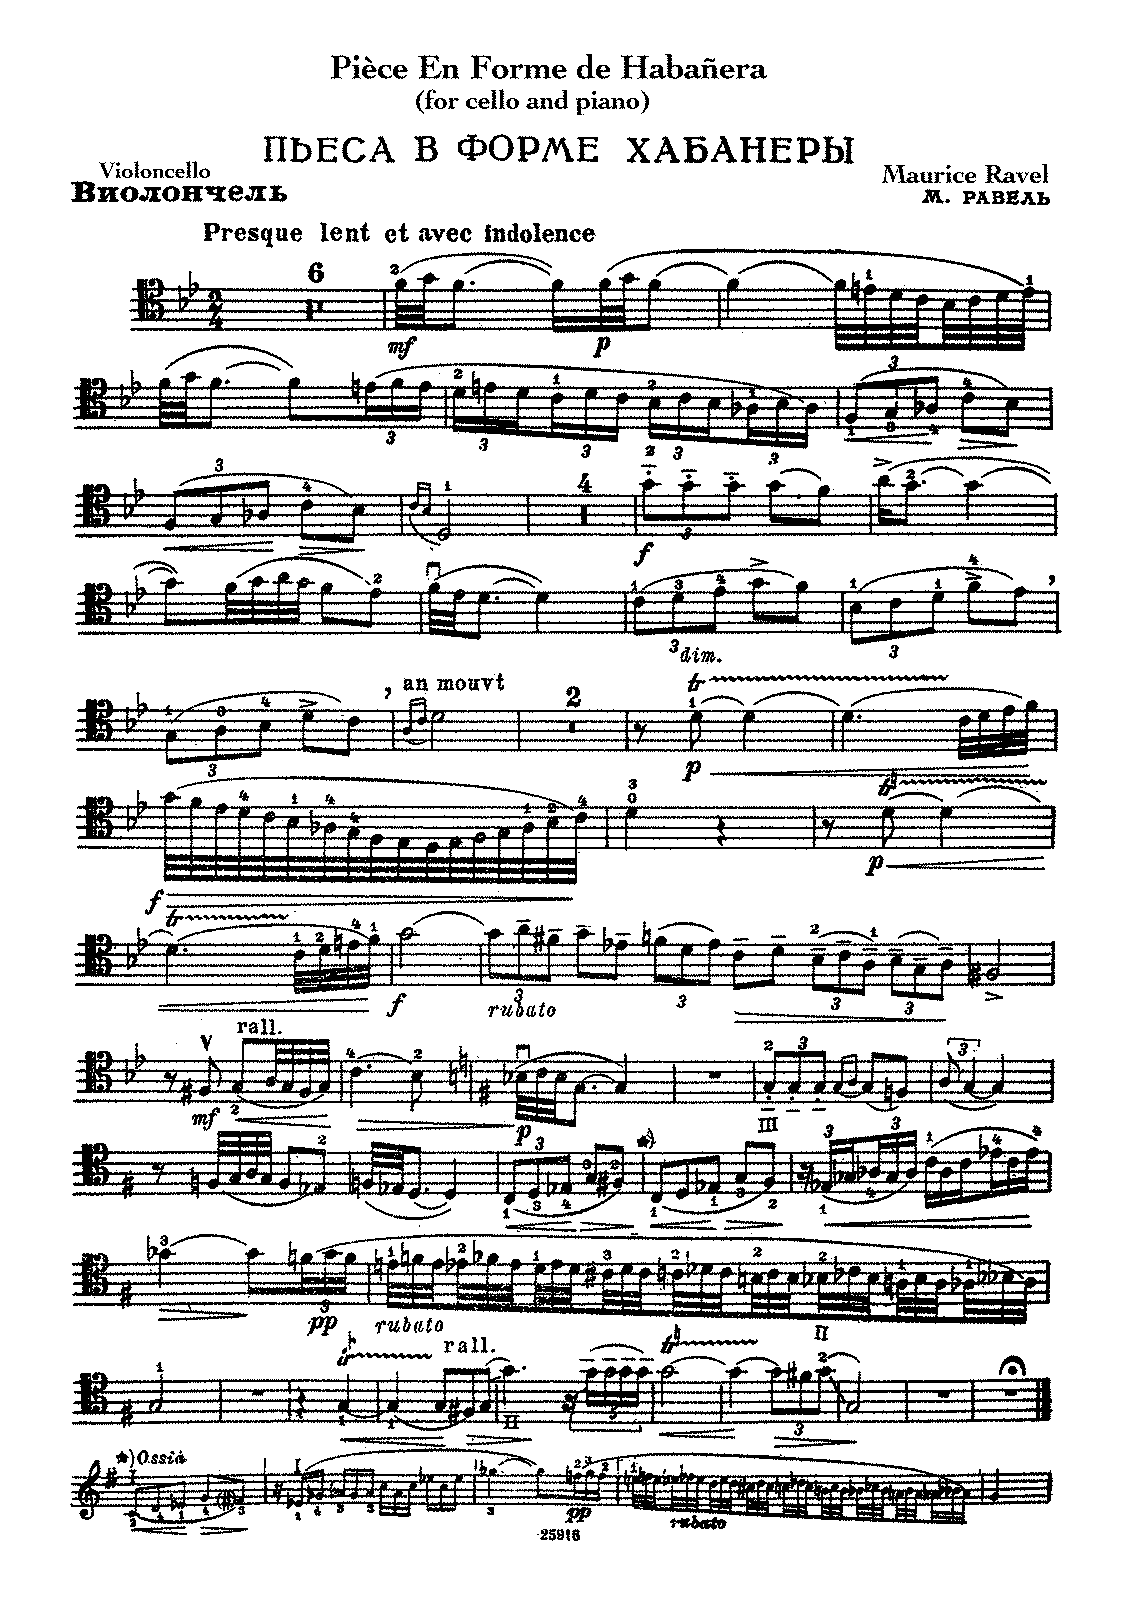 PMLP14944-Ravel - Piece En Forme de Habanera cello part.pdf